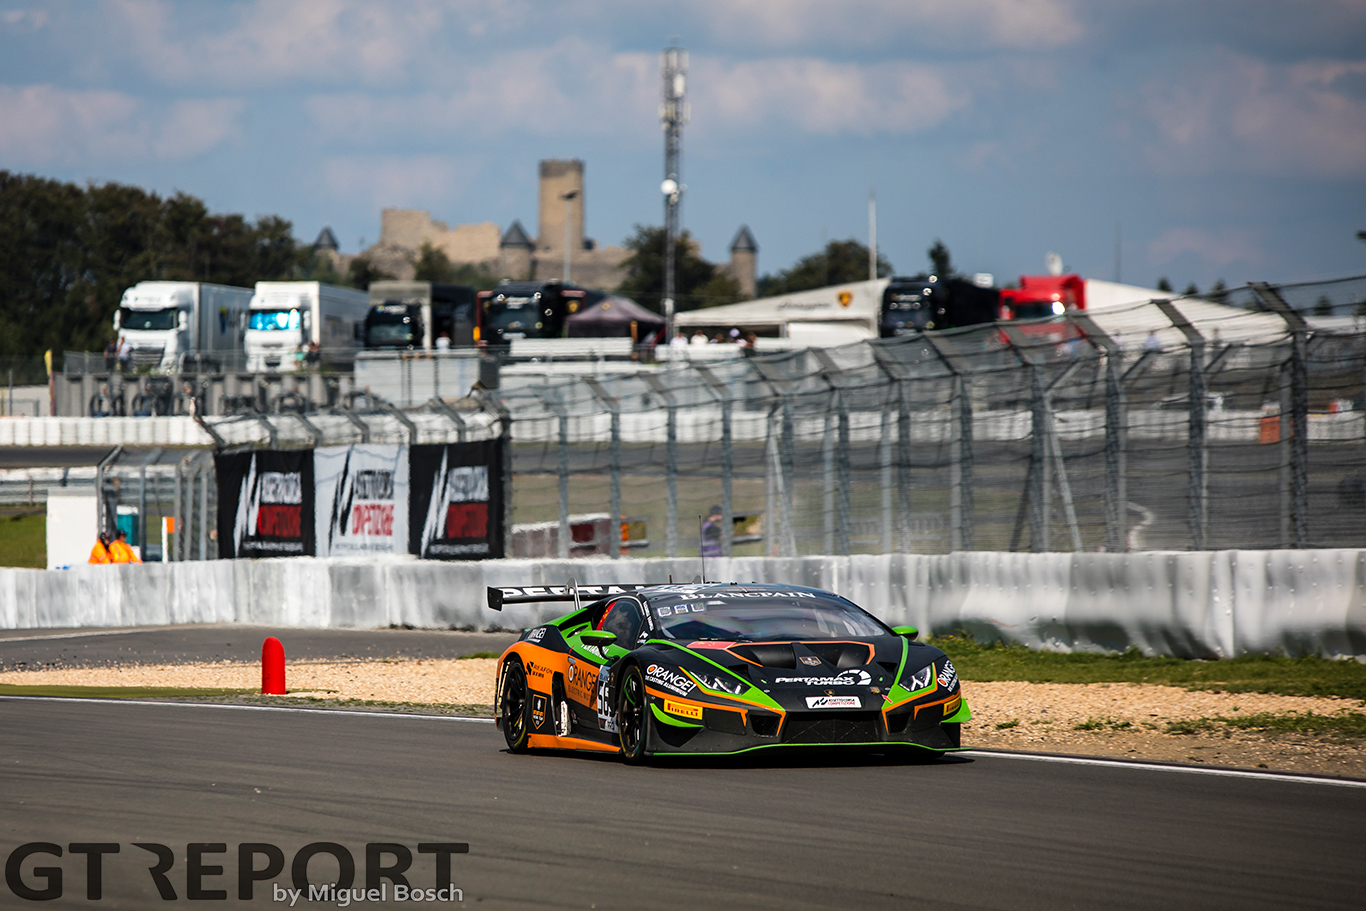 Blancpain GT Nürburgring: FFF Racing scores race 1 win after spectacular late overtake